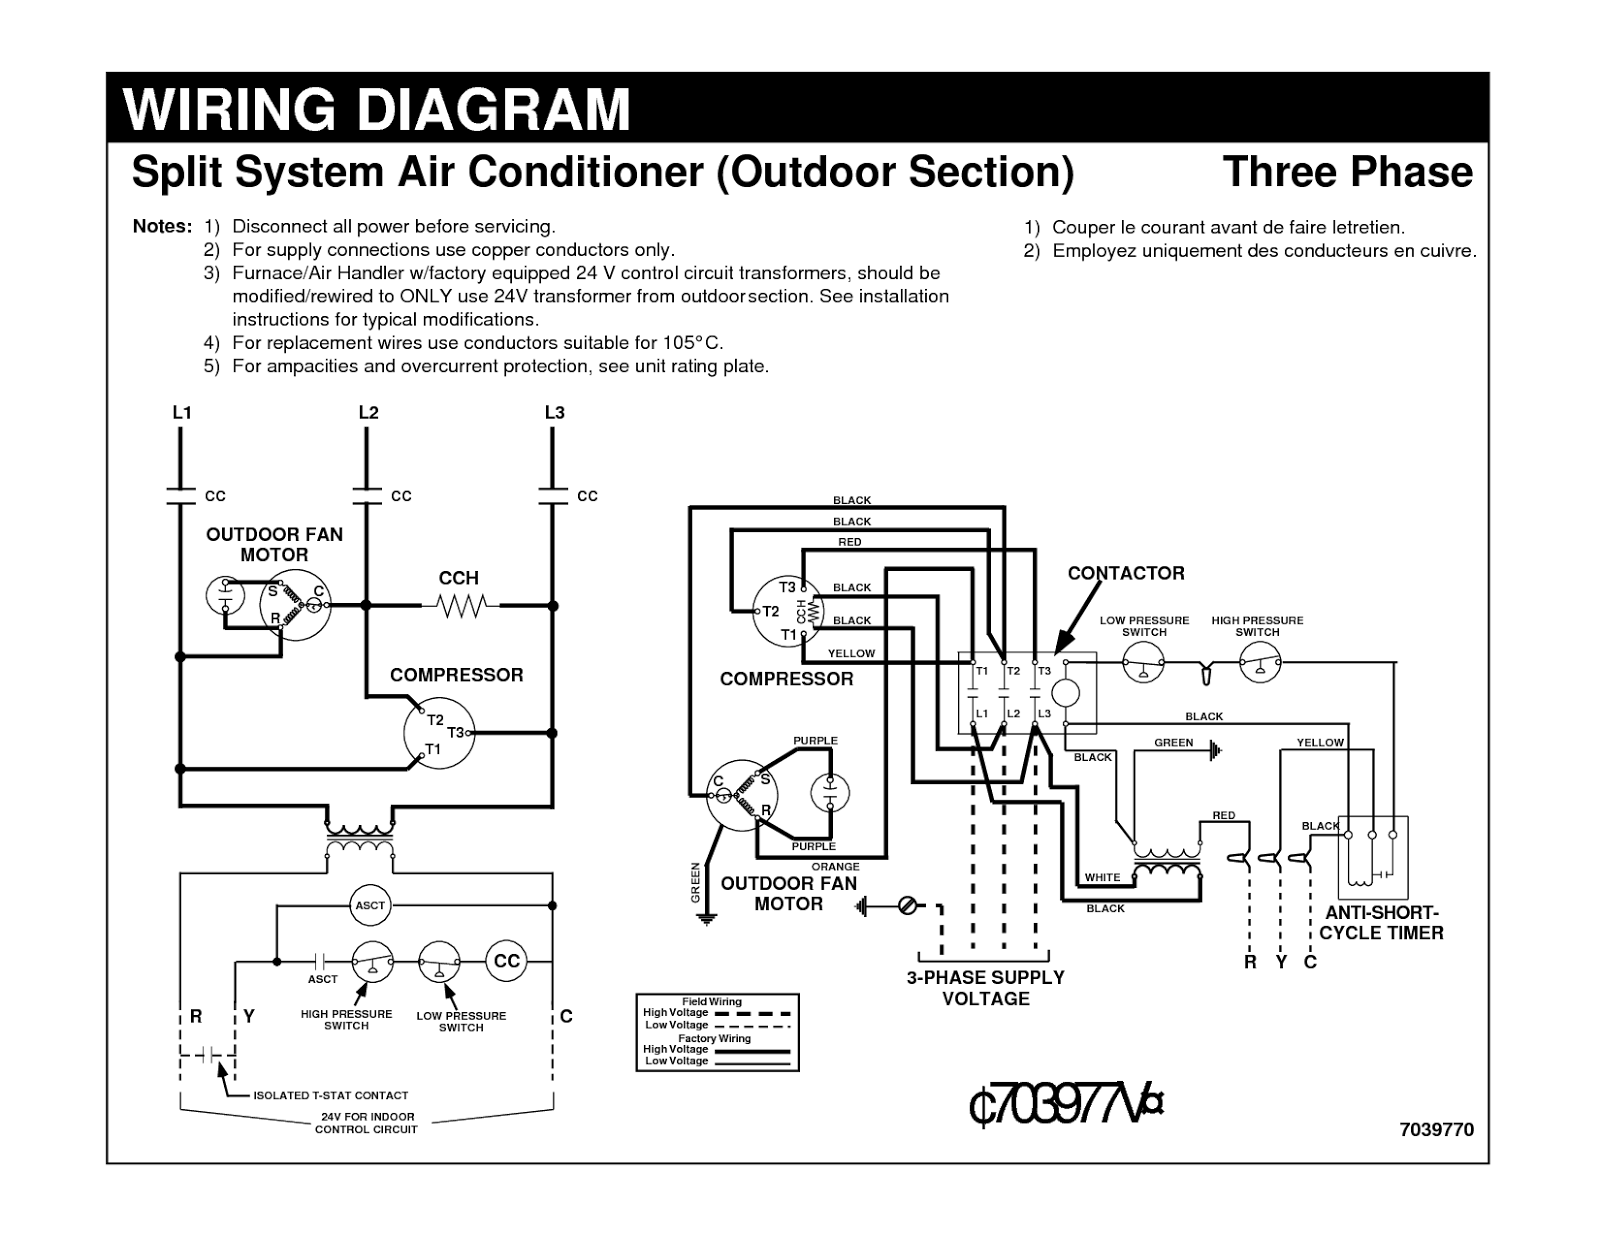 ac wiring schematics electrical wiring diagrams for air conditioning electrical wiring diagrams for air conditioning systems part one fig 1